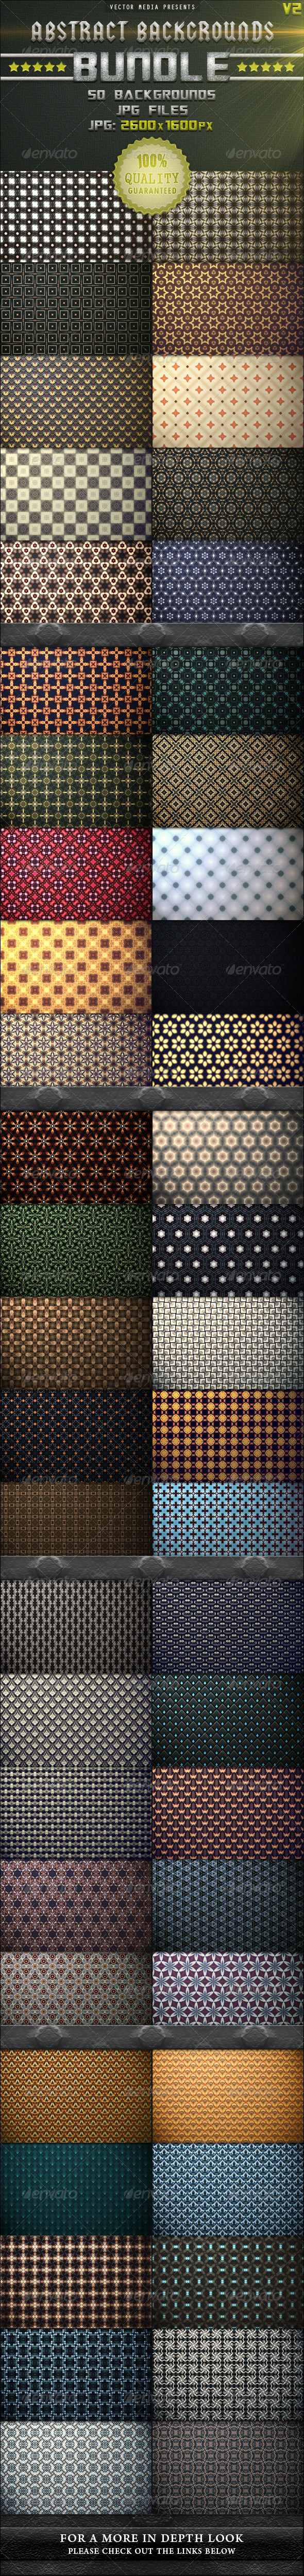 GraphicRiver Abstract Backgrounds Bundle [Vol.2] 3638841